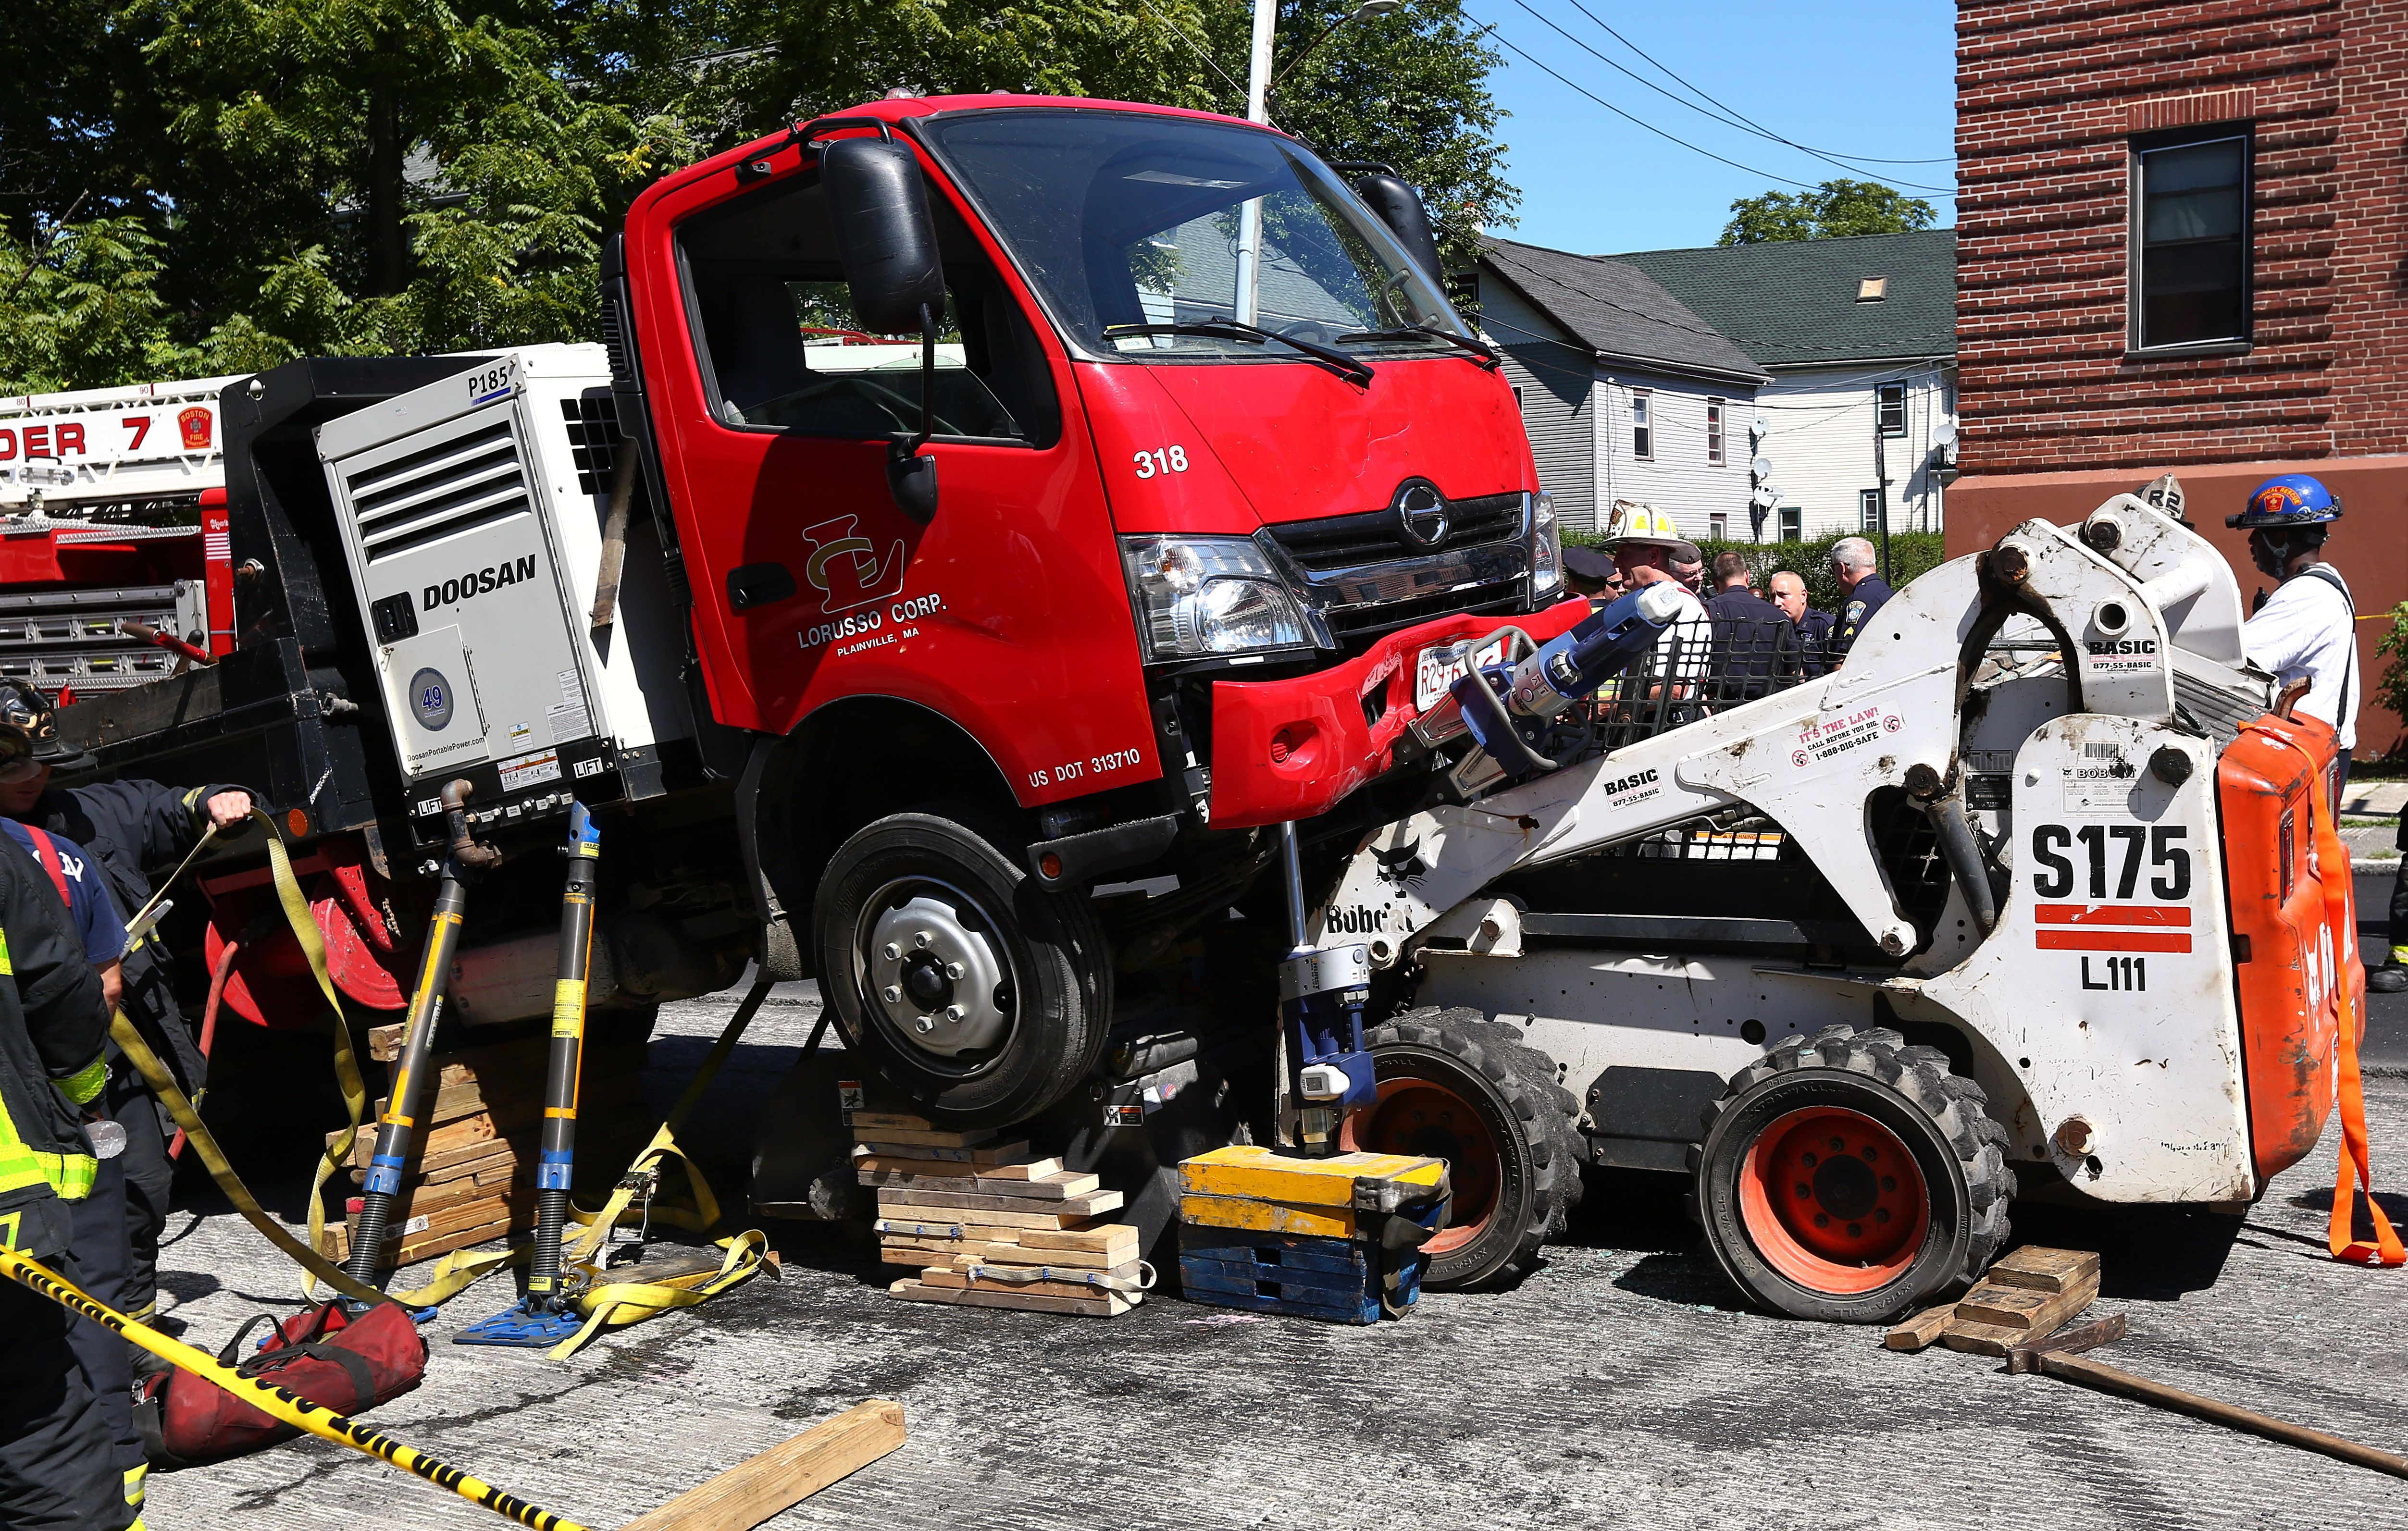 Firefighters extricate man trapped in Bobcat - The Boston Globe